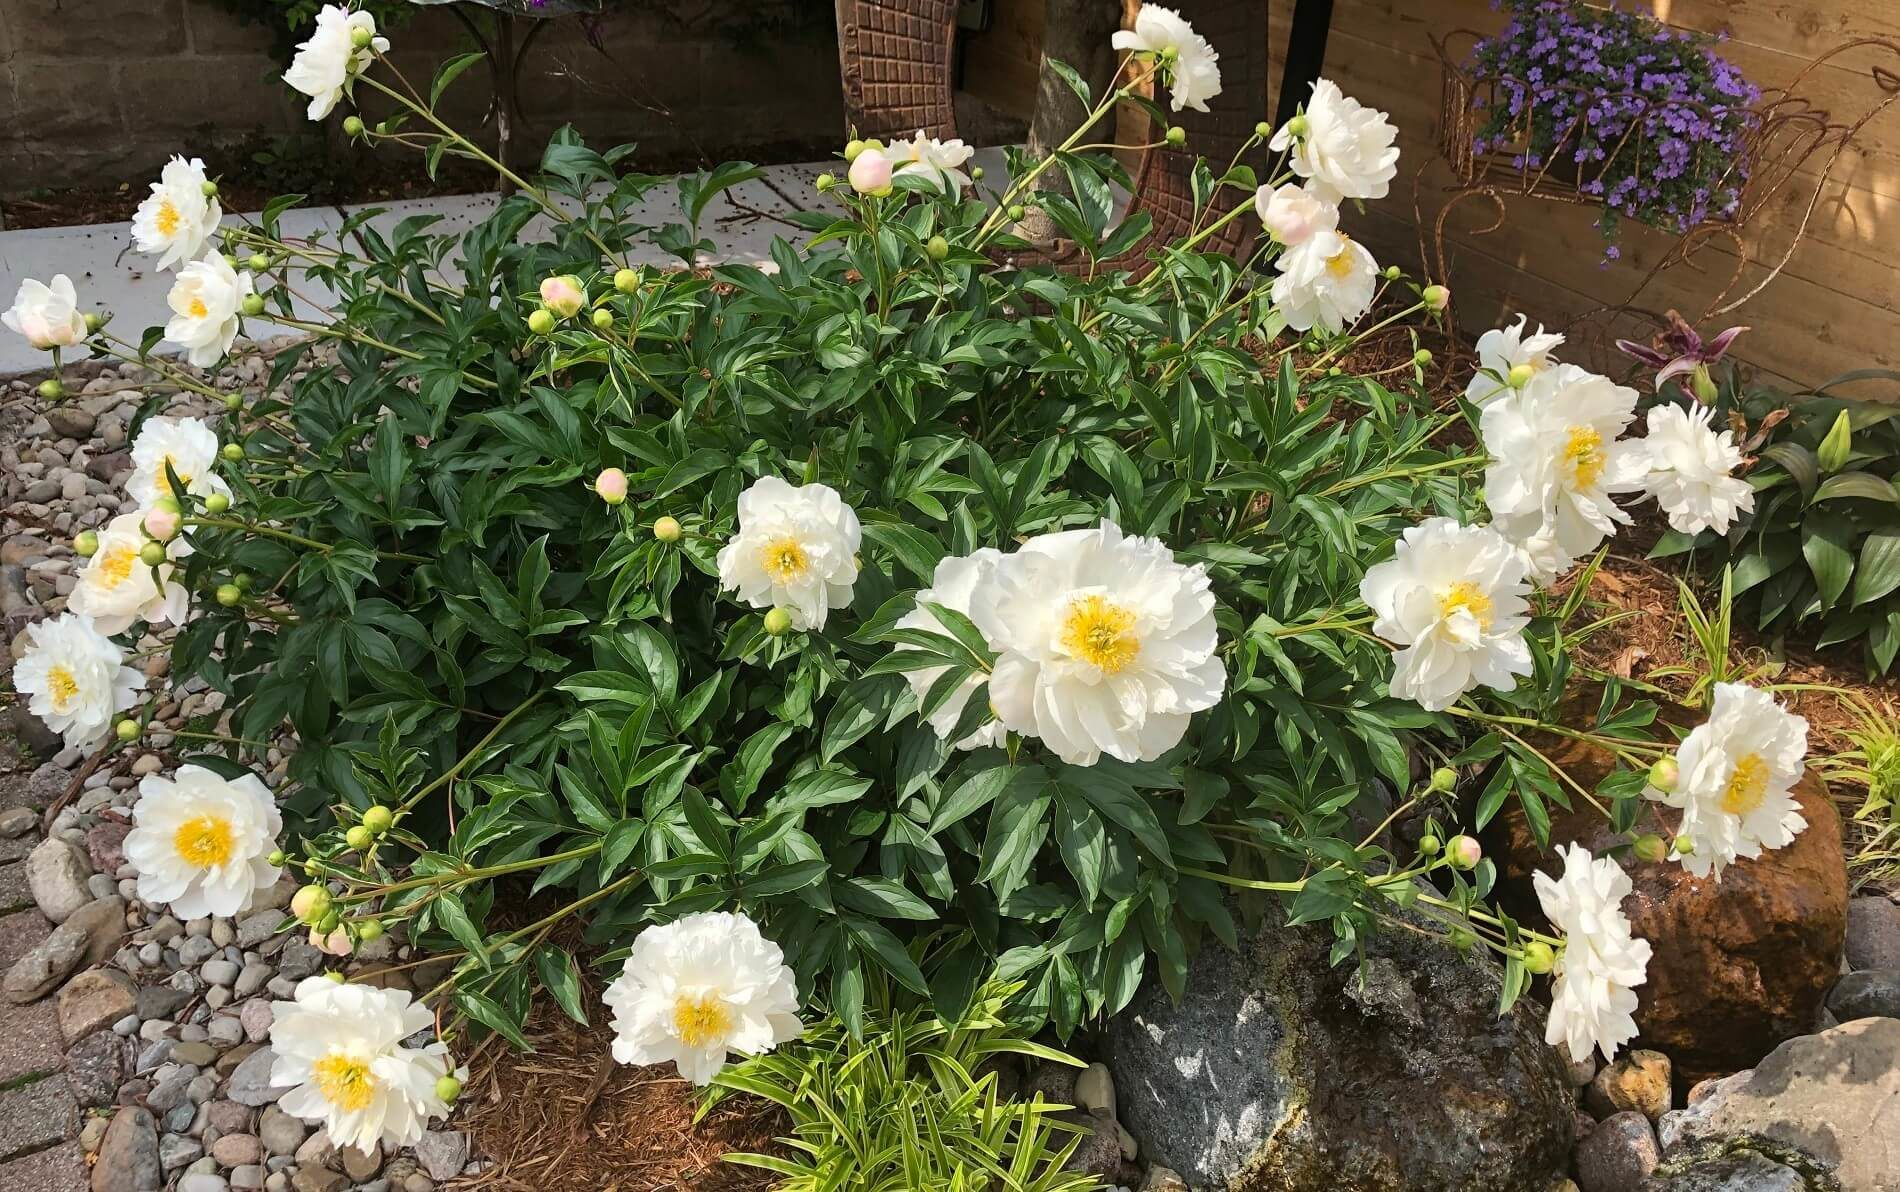 Large green flowering plant with white flowers and yellow centers